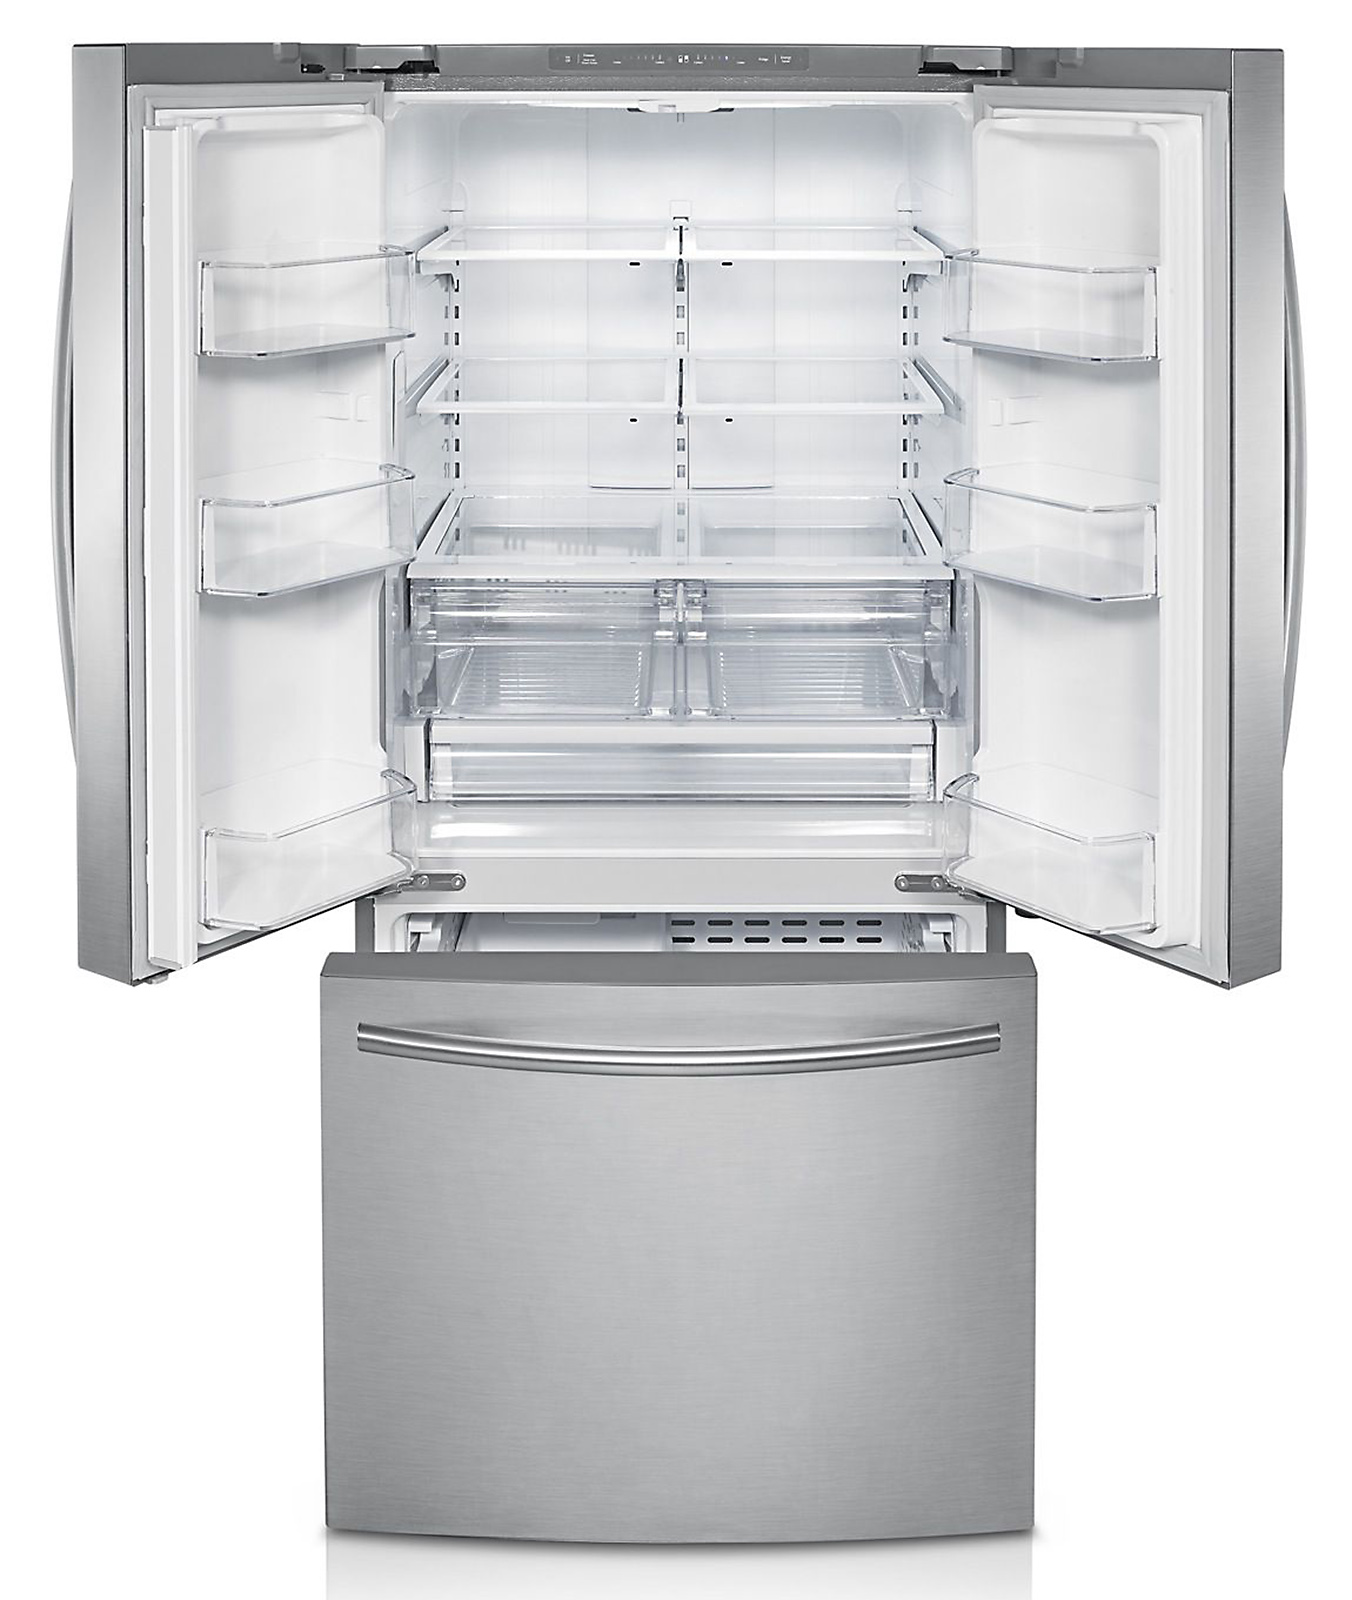 Samsung 22 cu. ft. French Door Refrigerator with Internal Water Dispenser - Silver